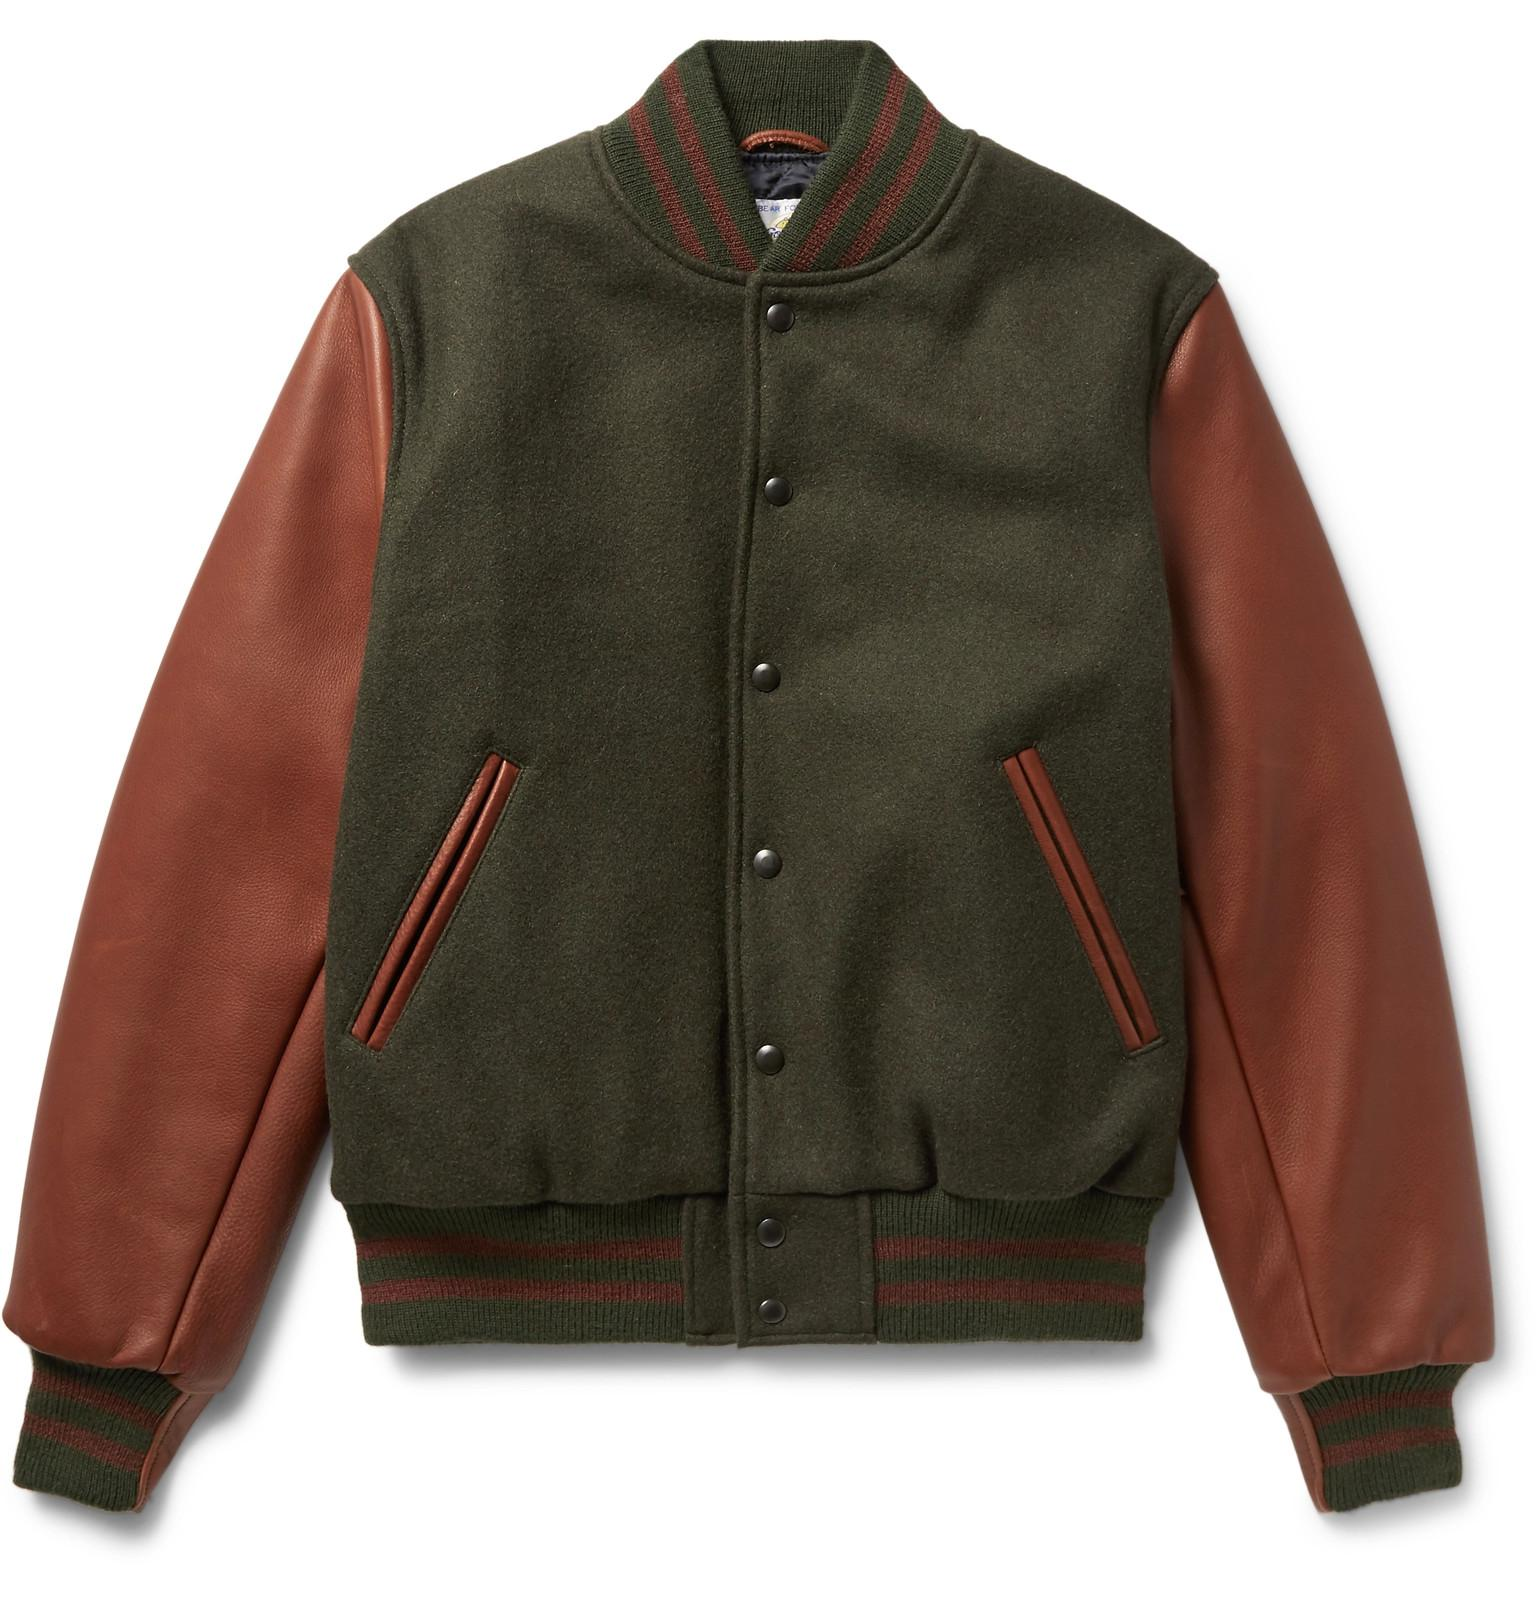 ab12680e8c30 Lyst - Golden Bear Virgin Wool-blend And Leather Bomber Jacket in ...